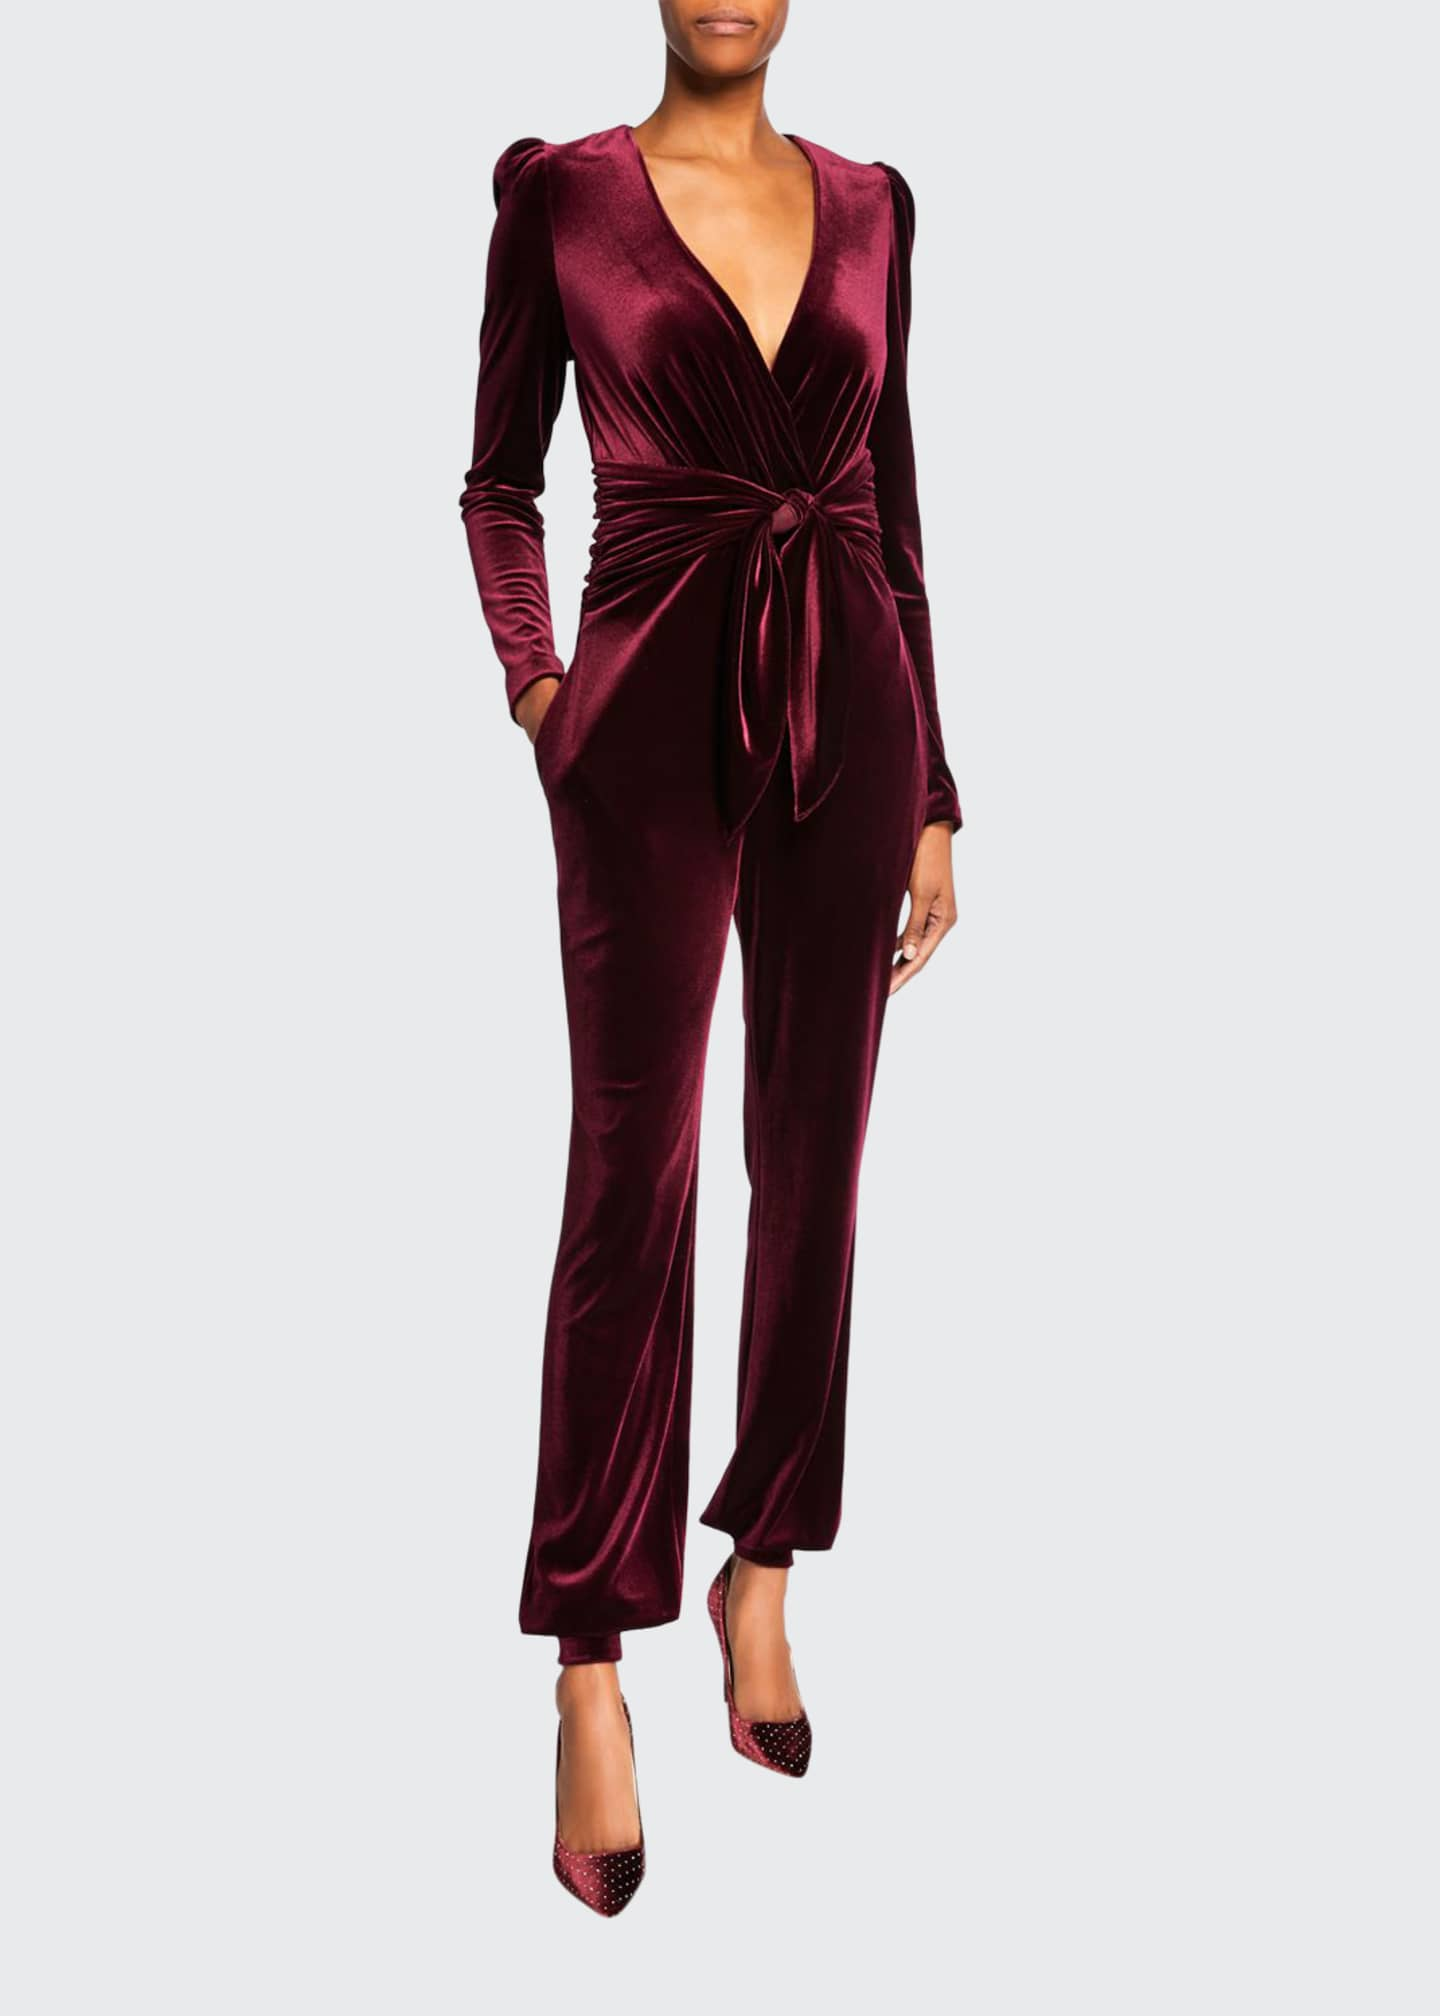 Monique Lhuillier Velour Tie-Waist Jumpsuit